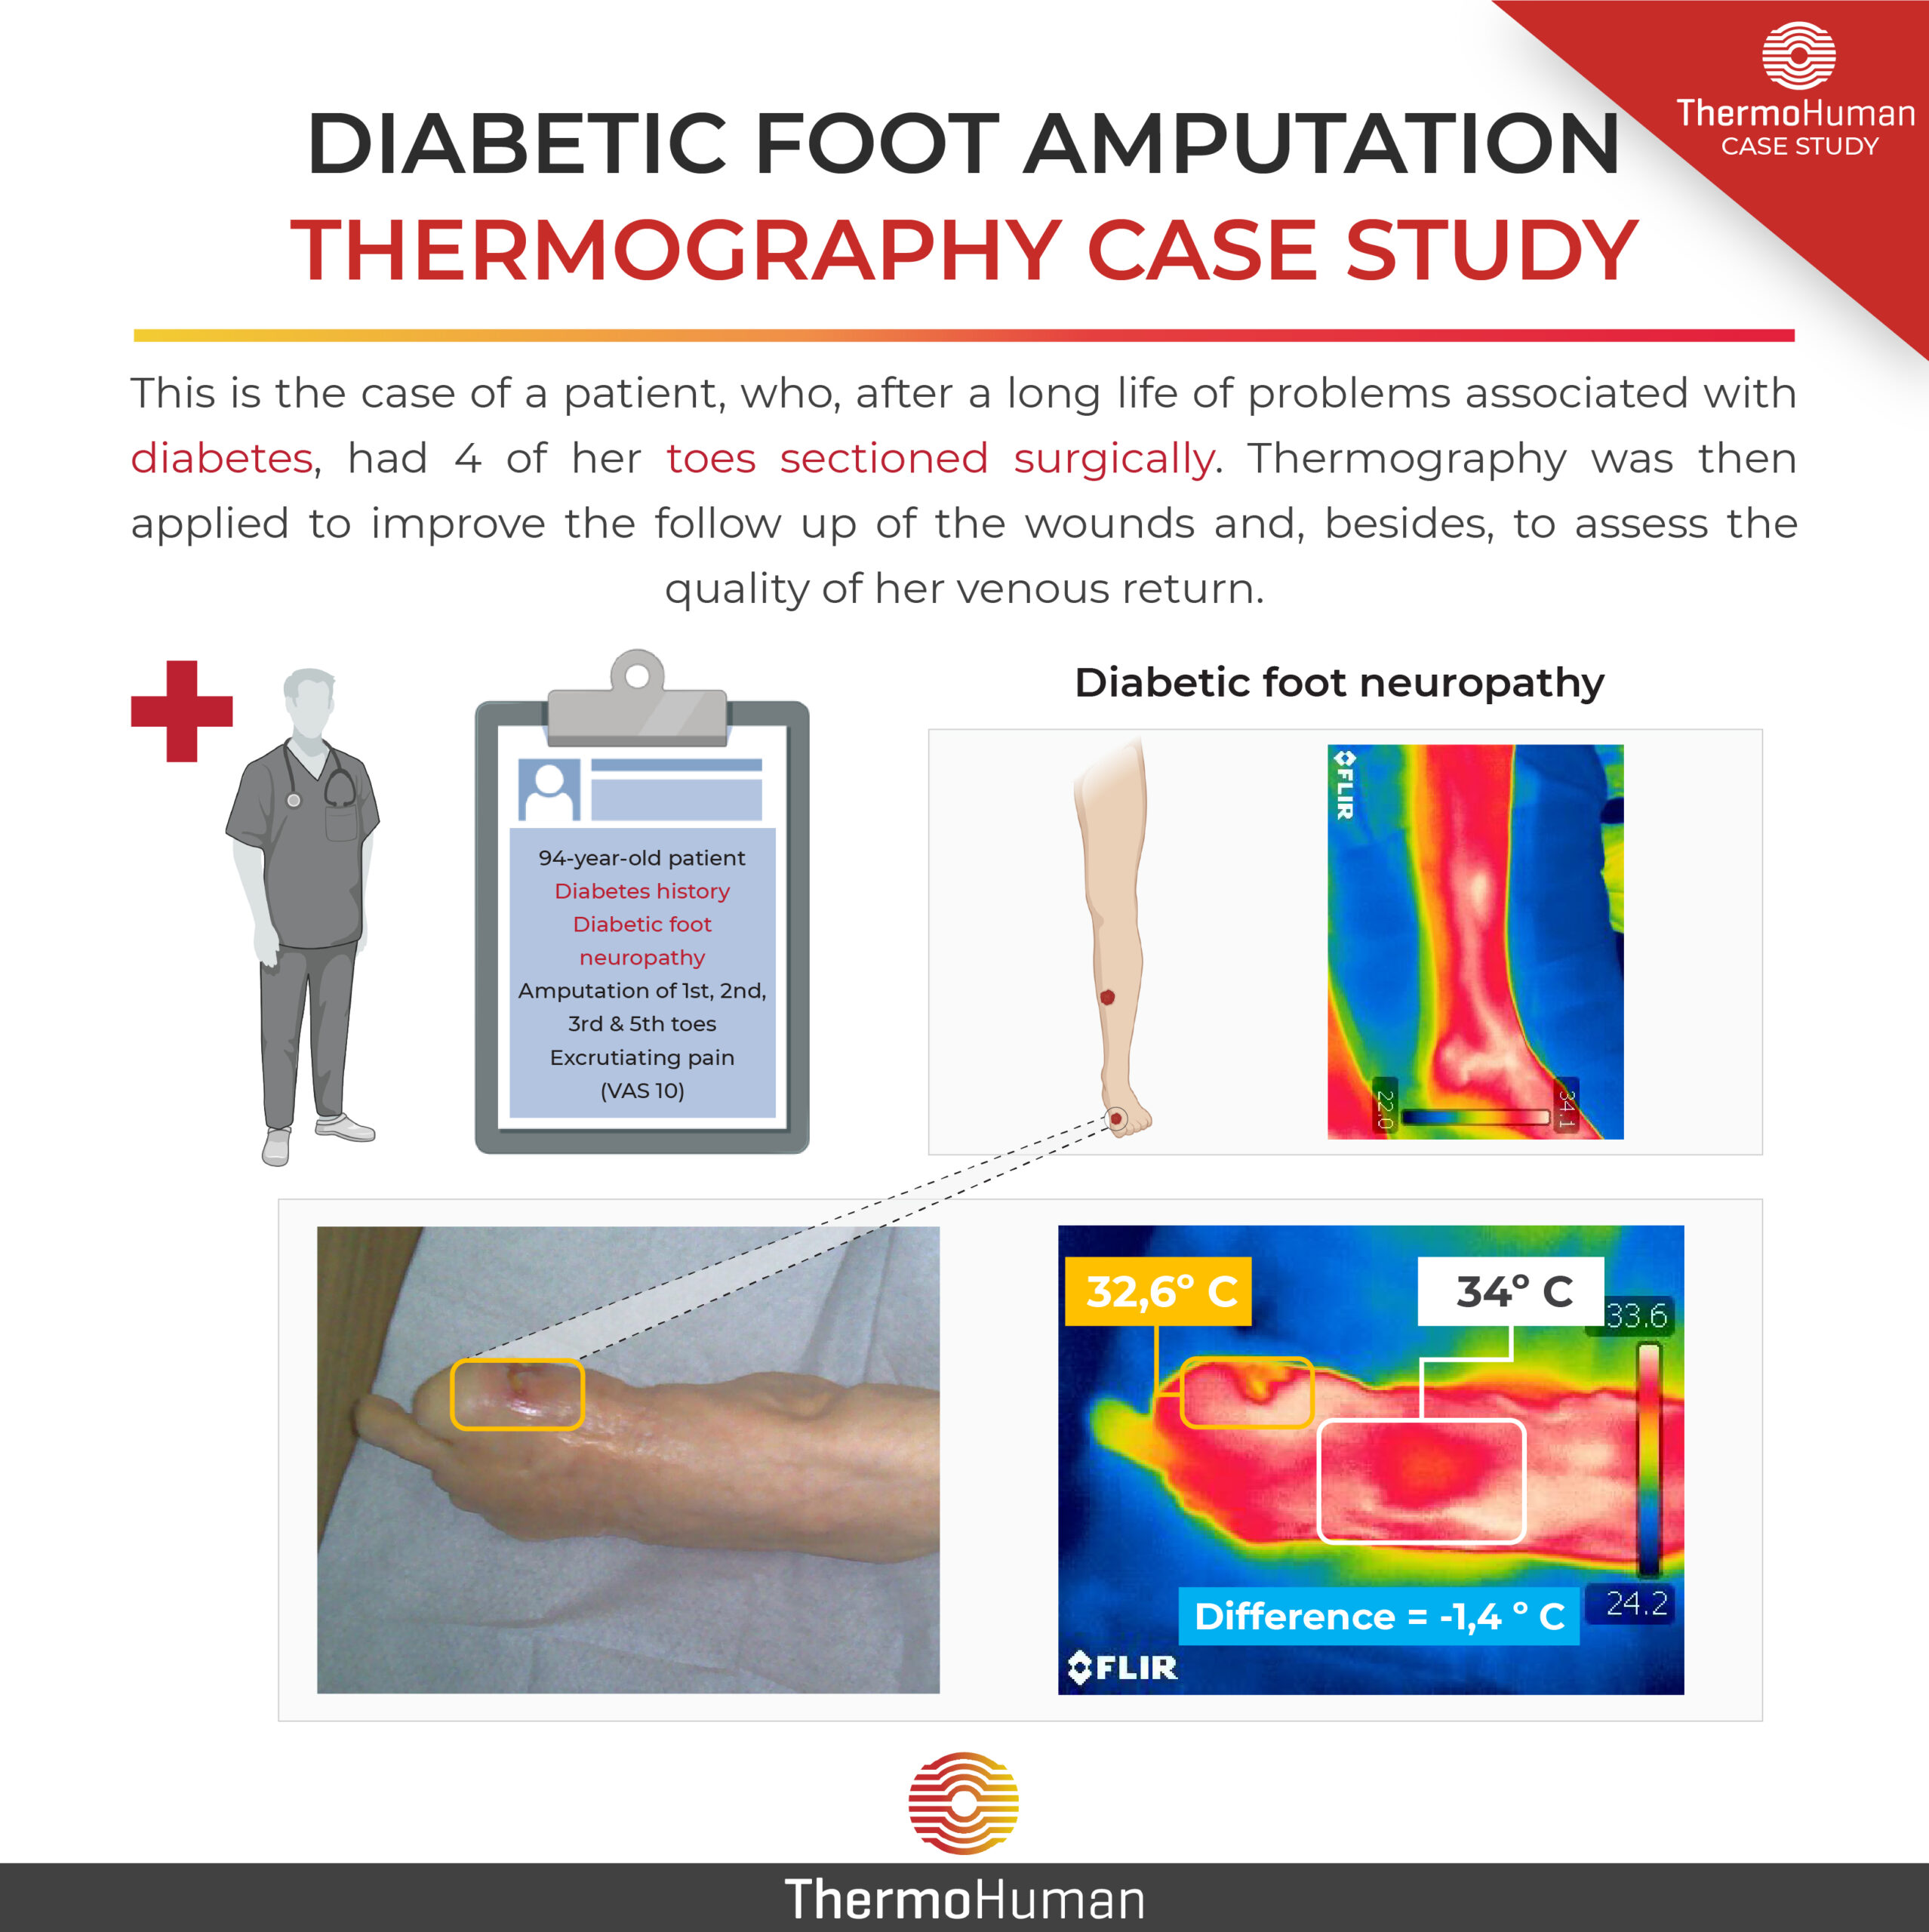 Diabetic foot amputation and thermography: study case